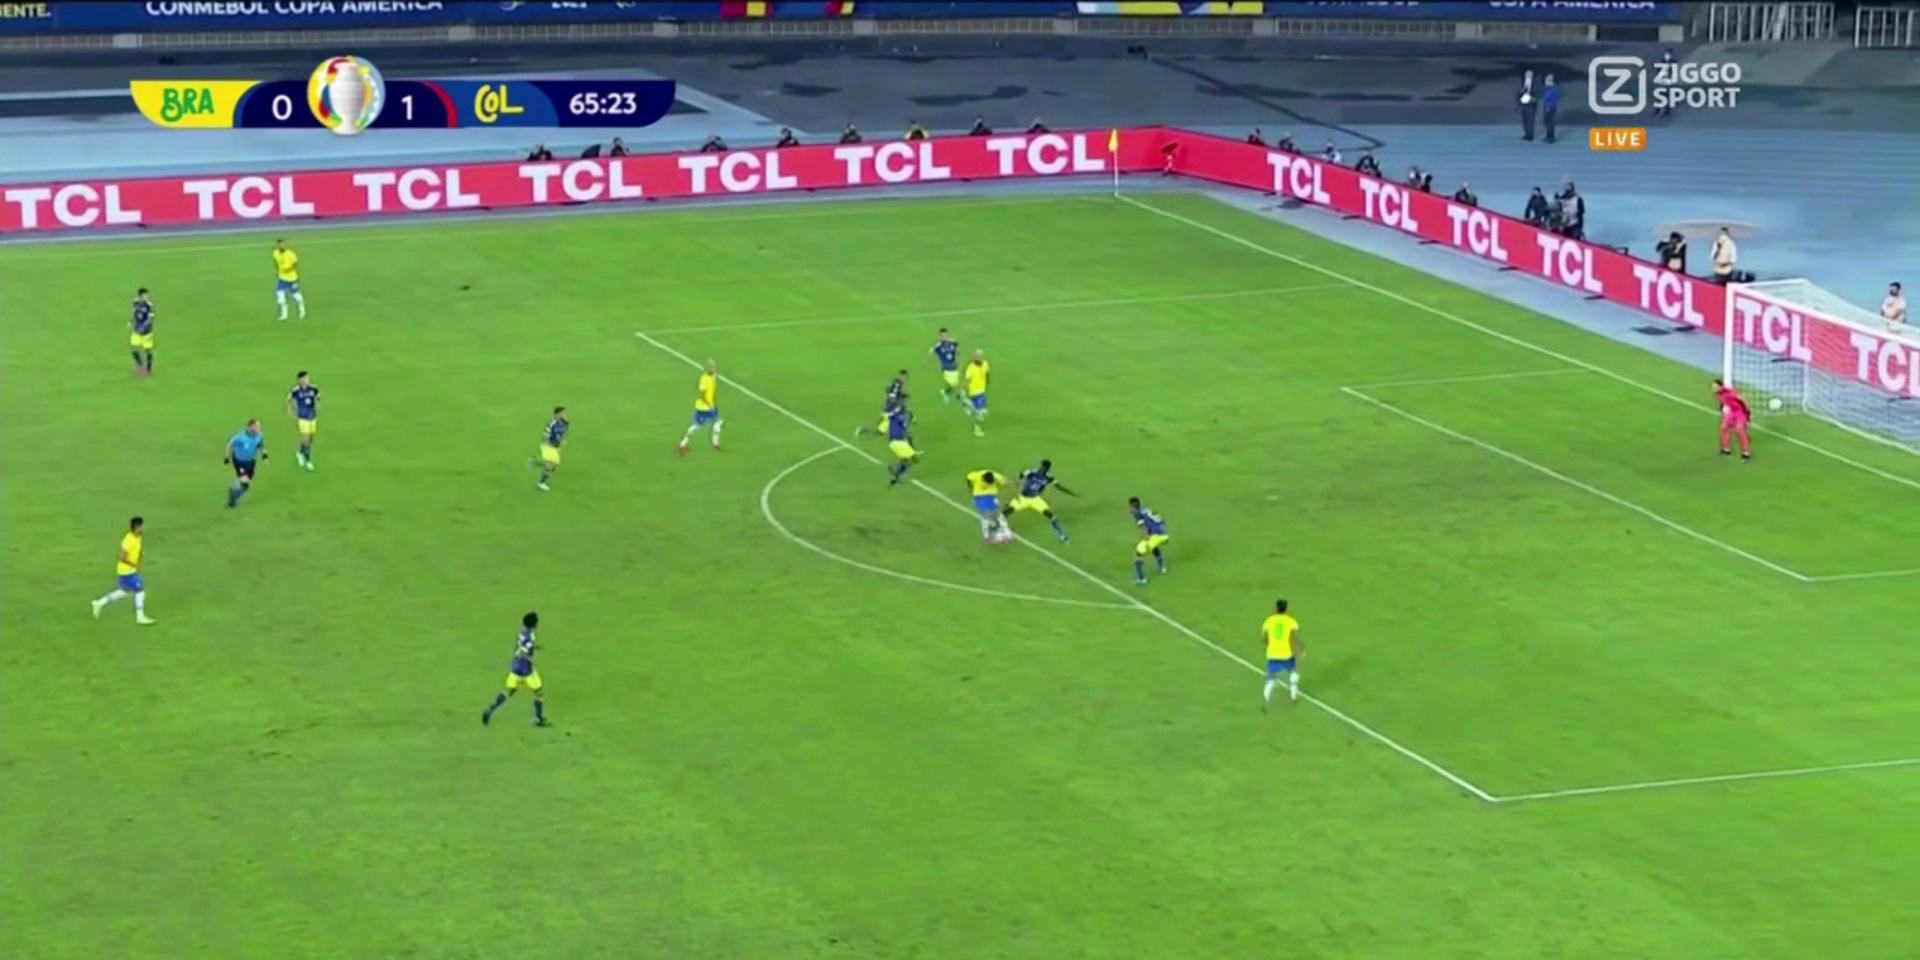 (Video) Firmino sets up Neymar for Brazil goal with glorious pass in Copa America – but PSG star smashes post